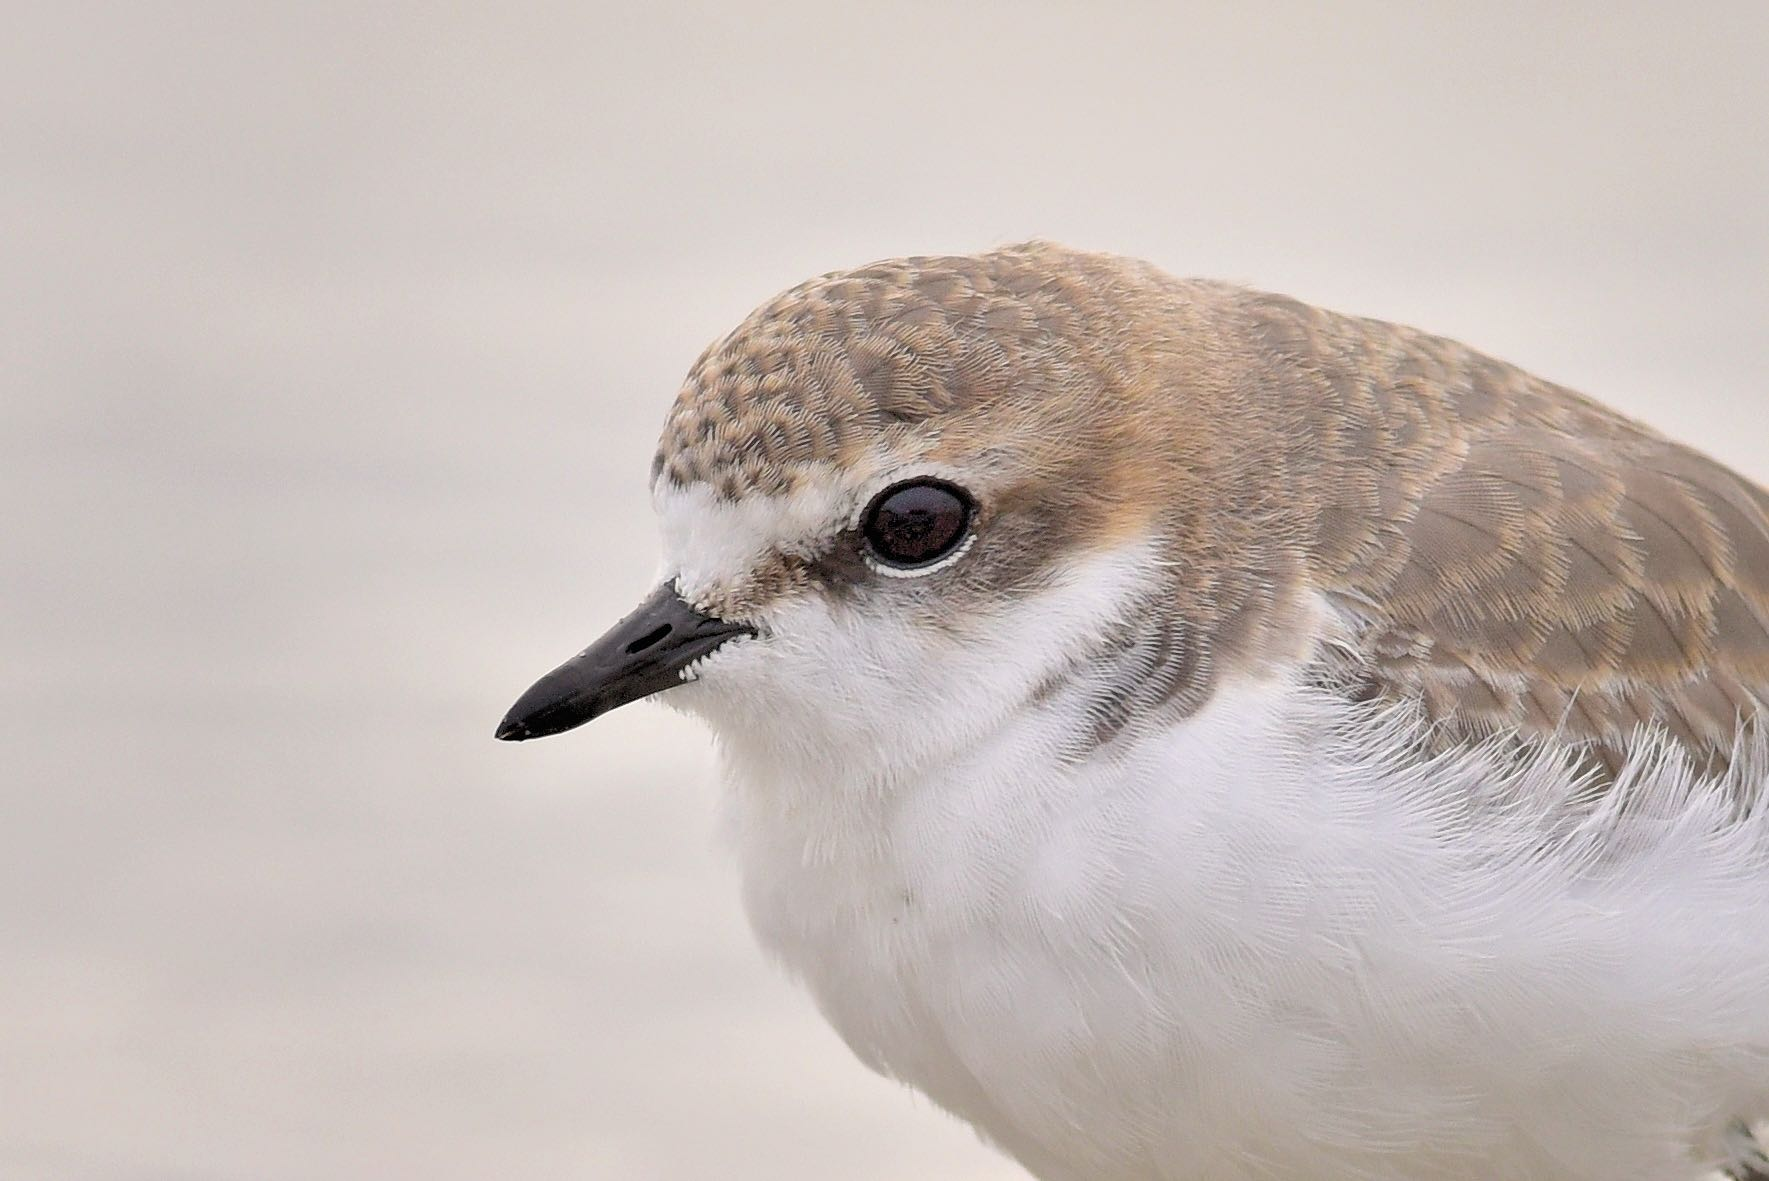 plover chat Plover-net, often misspelled plovernet, was a popular bulletin board system in the early 1980s hosted in new york state and originally owned and operated by a.